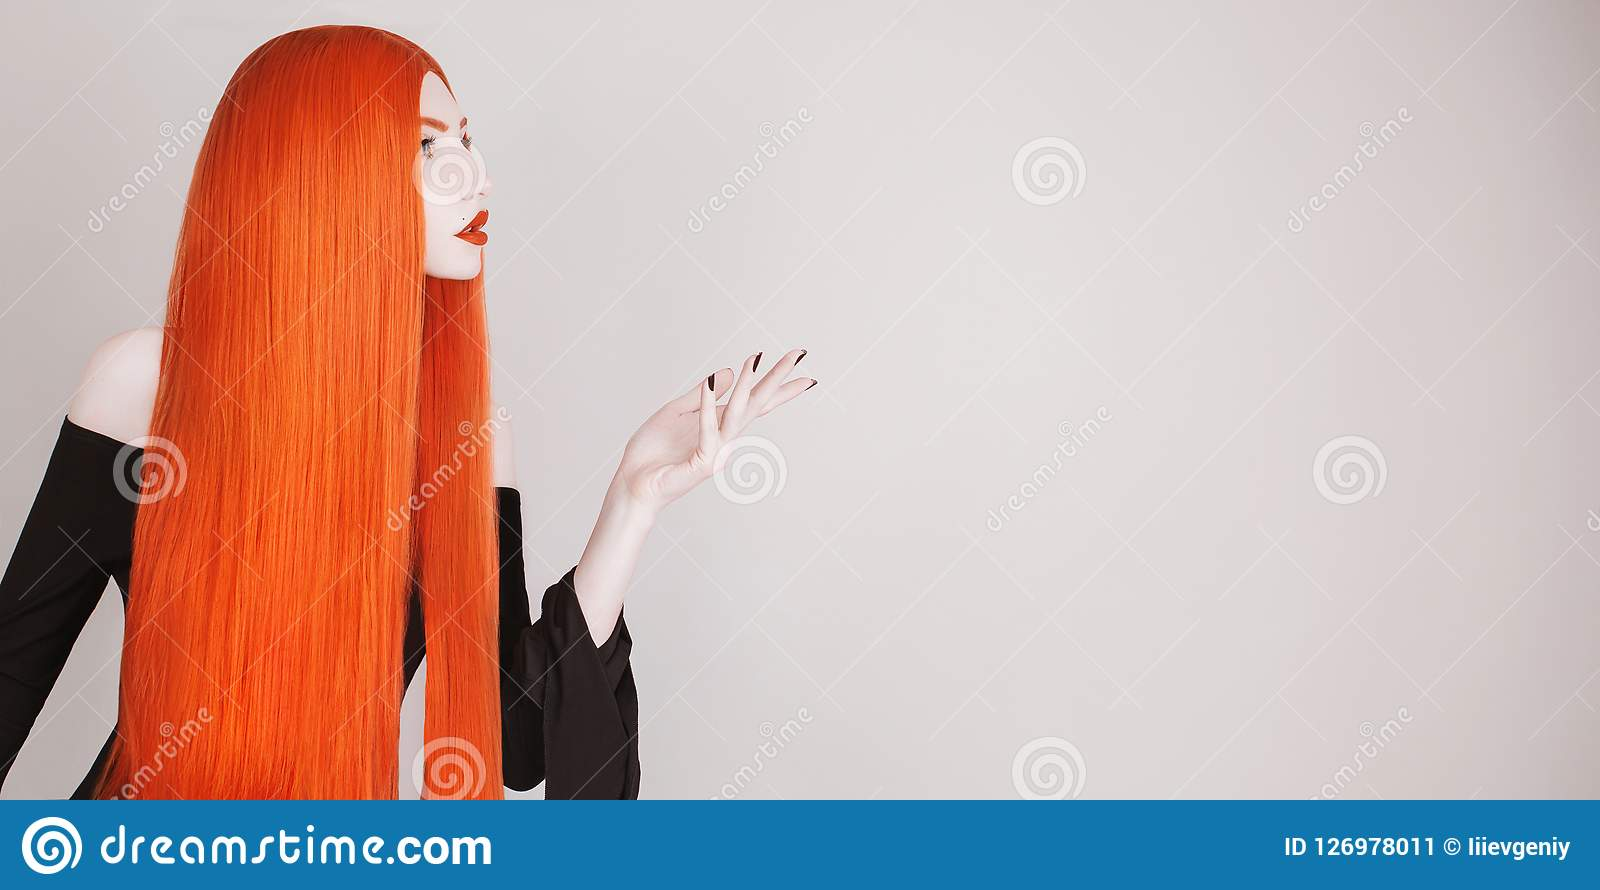 Perfect halloween attire. Gothic redhead woman with perfect straight hair in black dress advertise product. Redhead girl with red